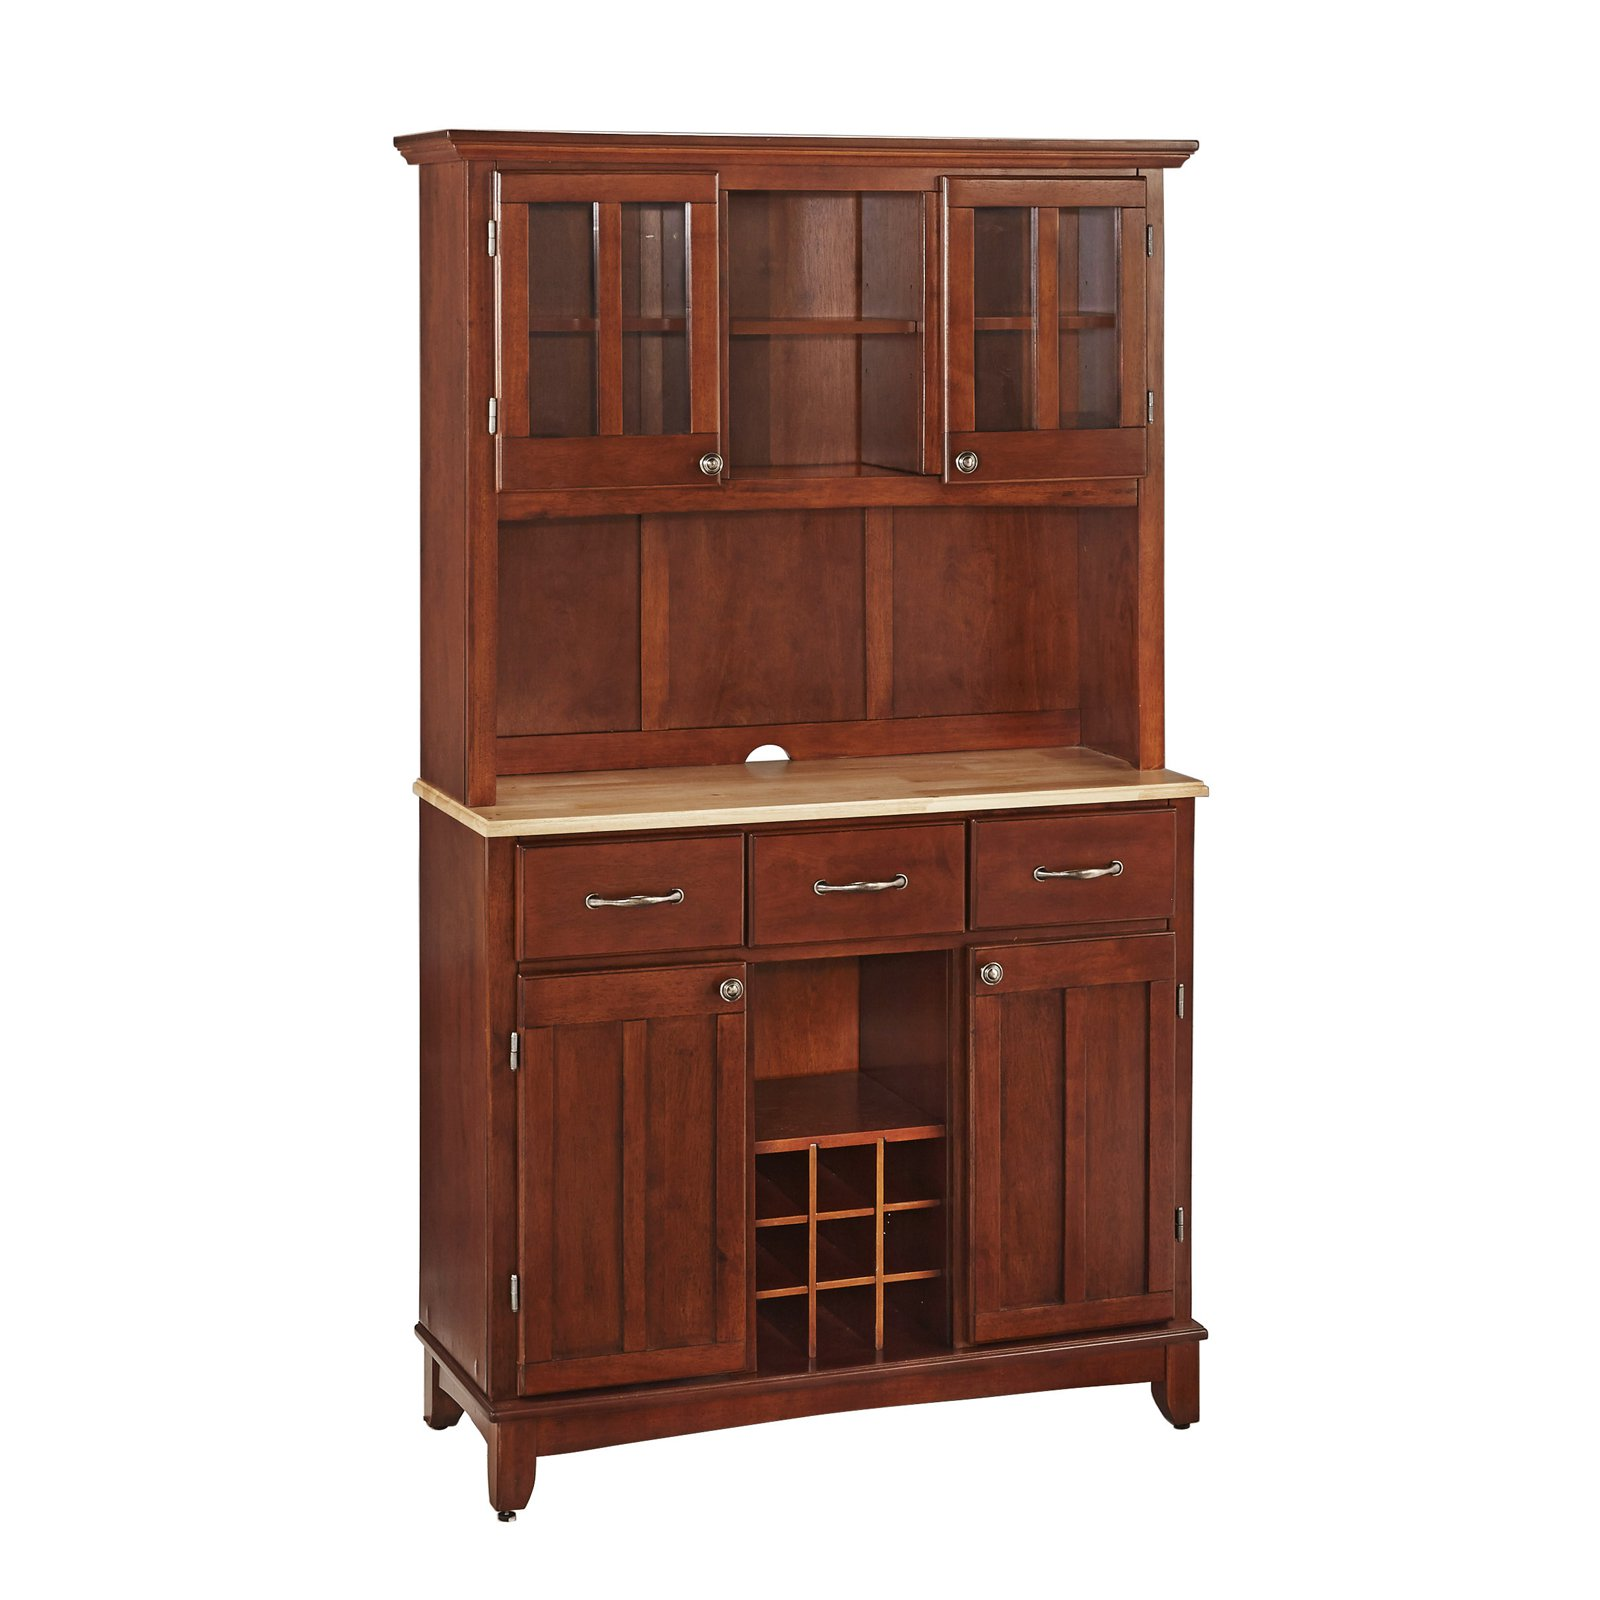 Home Styles Large Buffet U0026 Two Door Hutch, Cherry Finish   Walmart.com